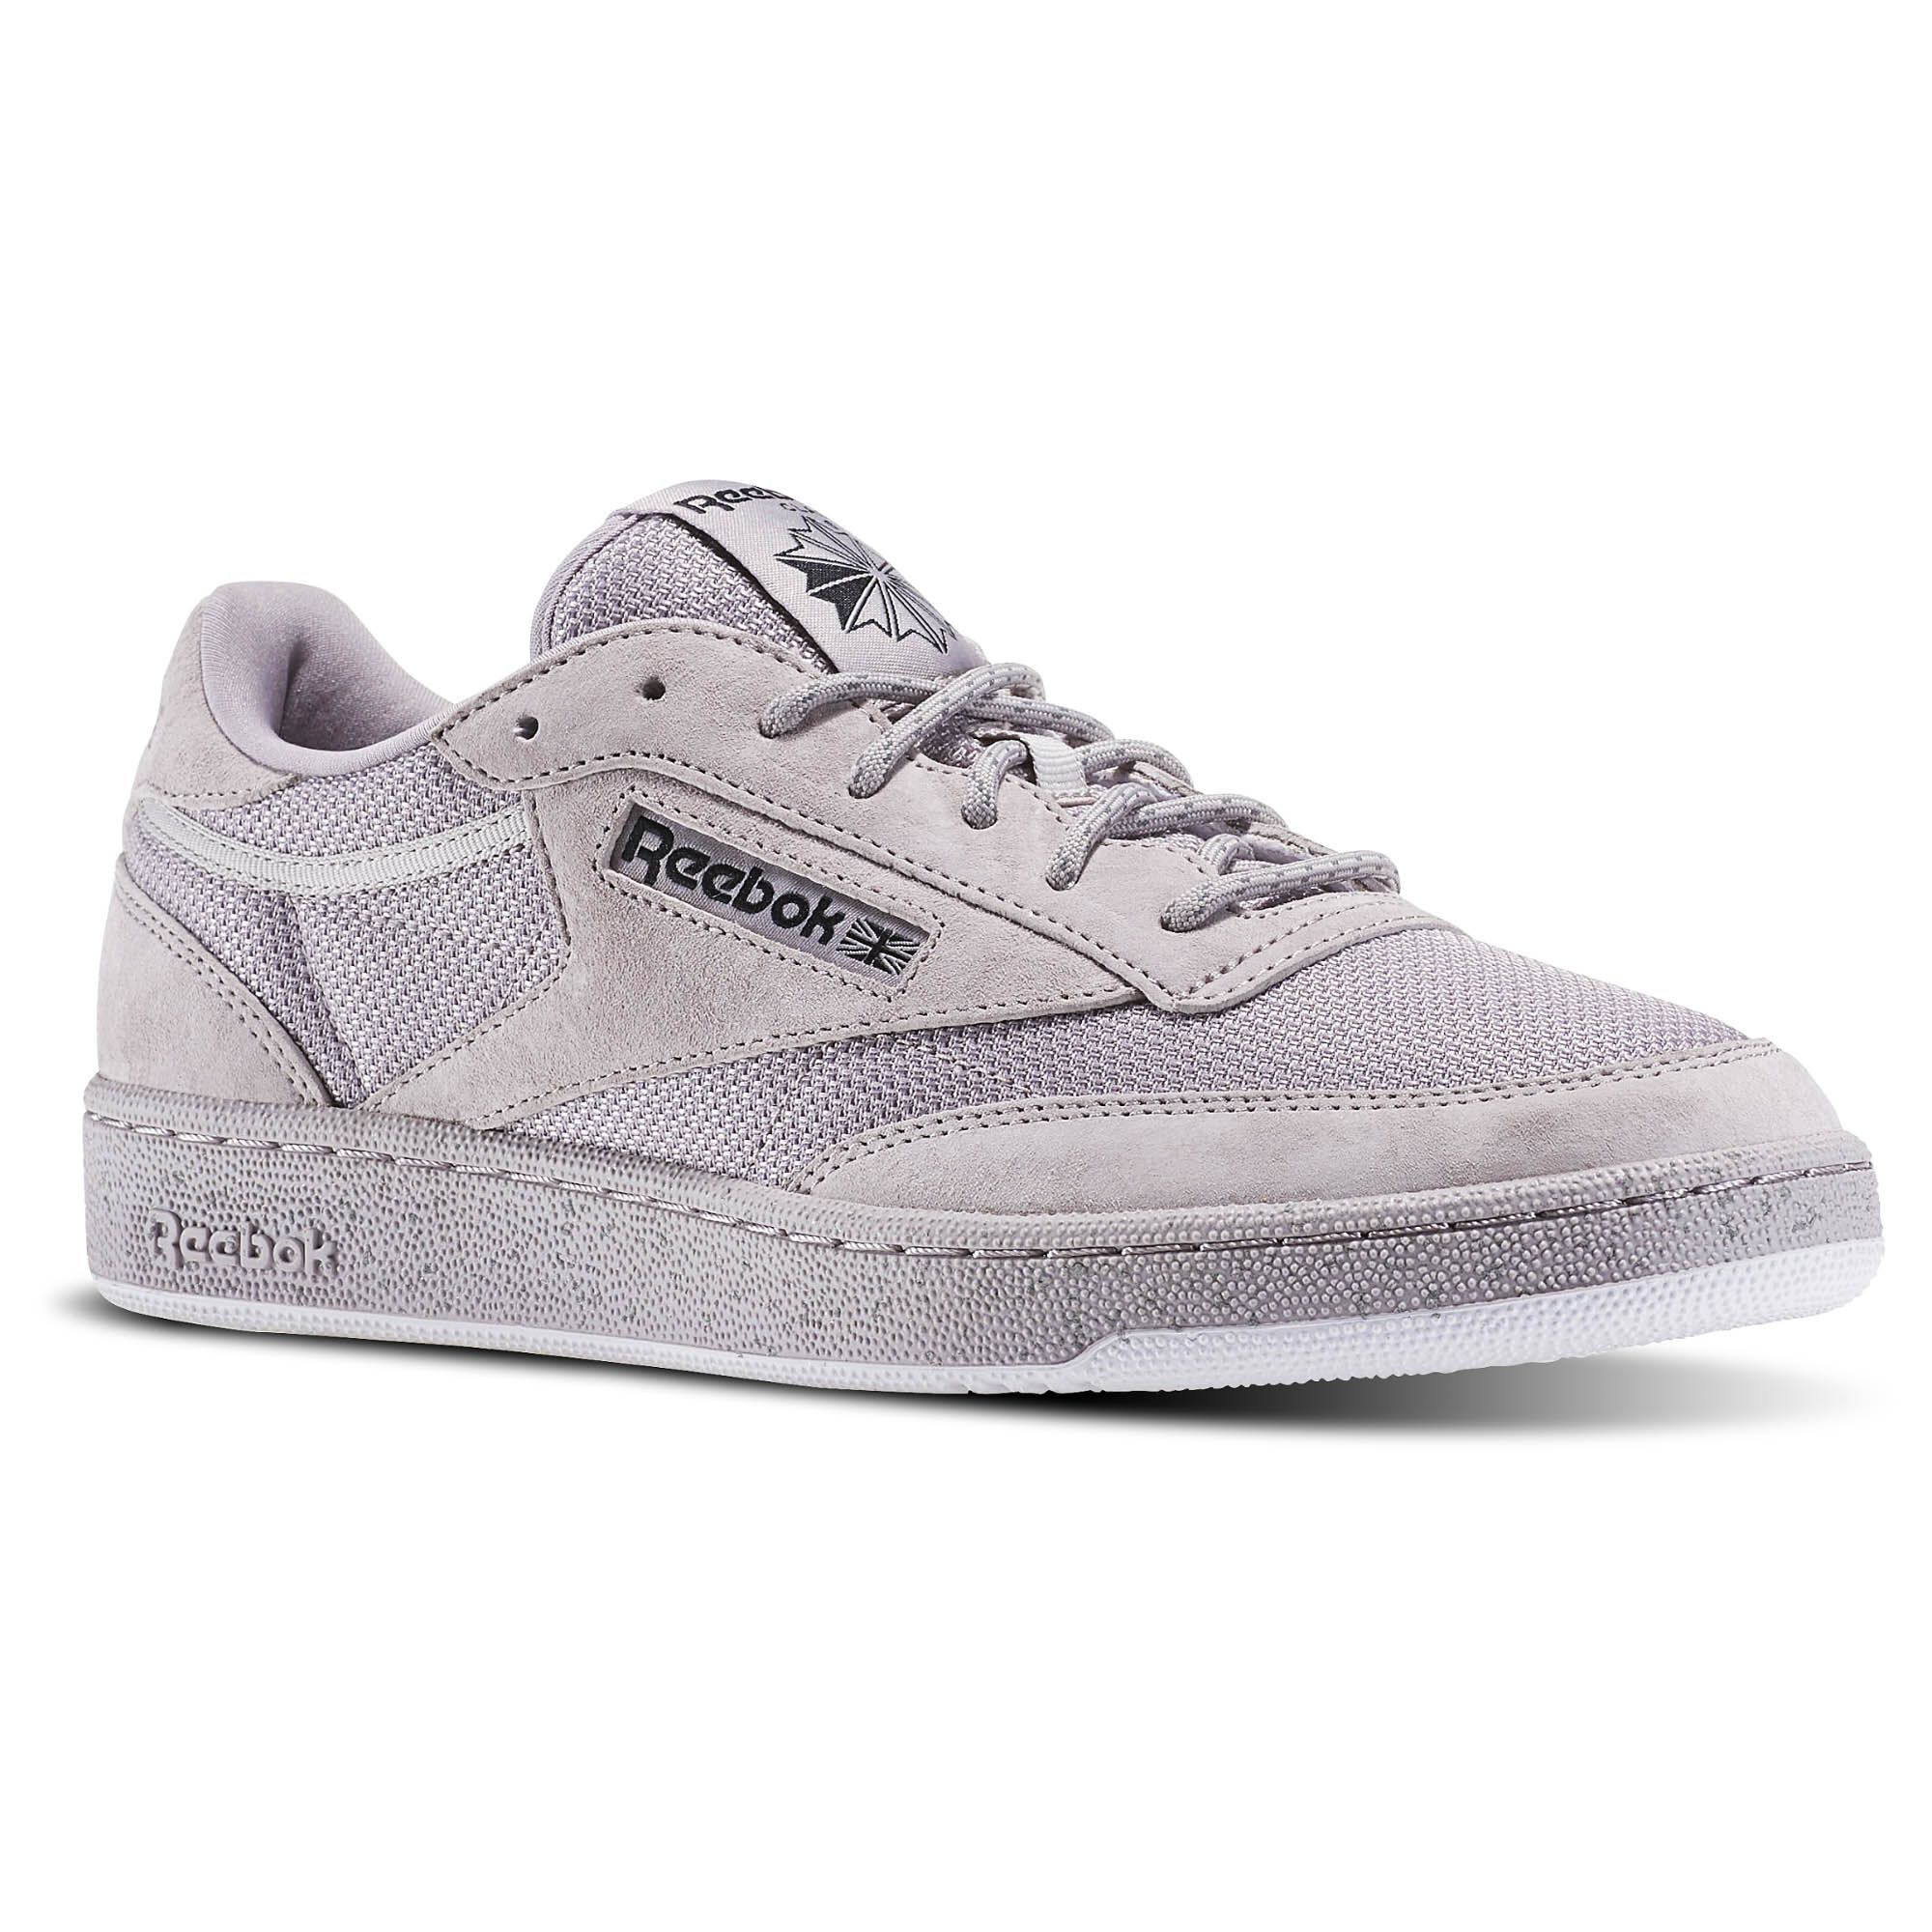 reebok club c 85 st grey reebok mlt. Black Bedroom Furniture Sets. Home Design Ideas